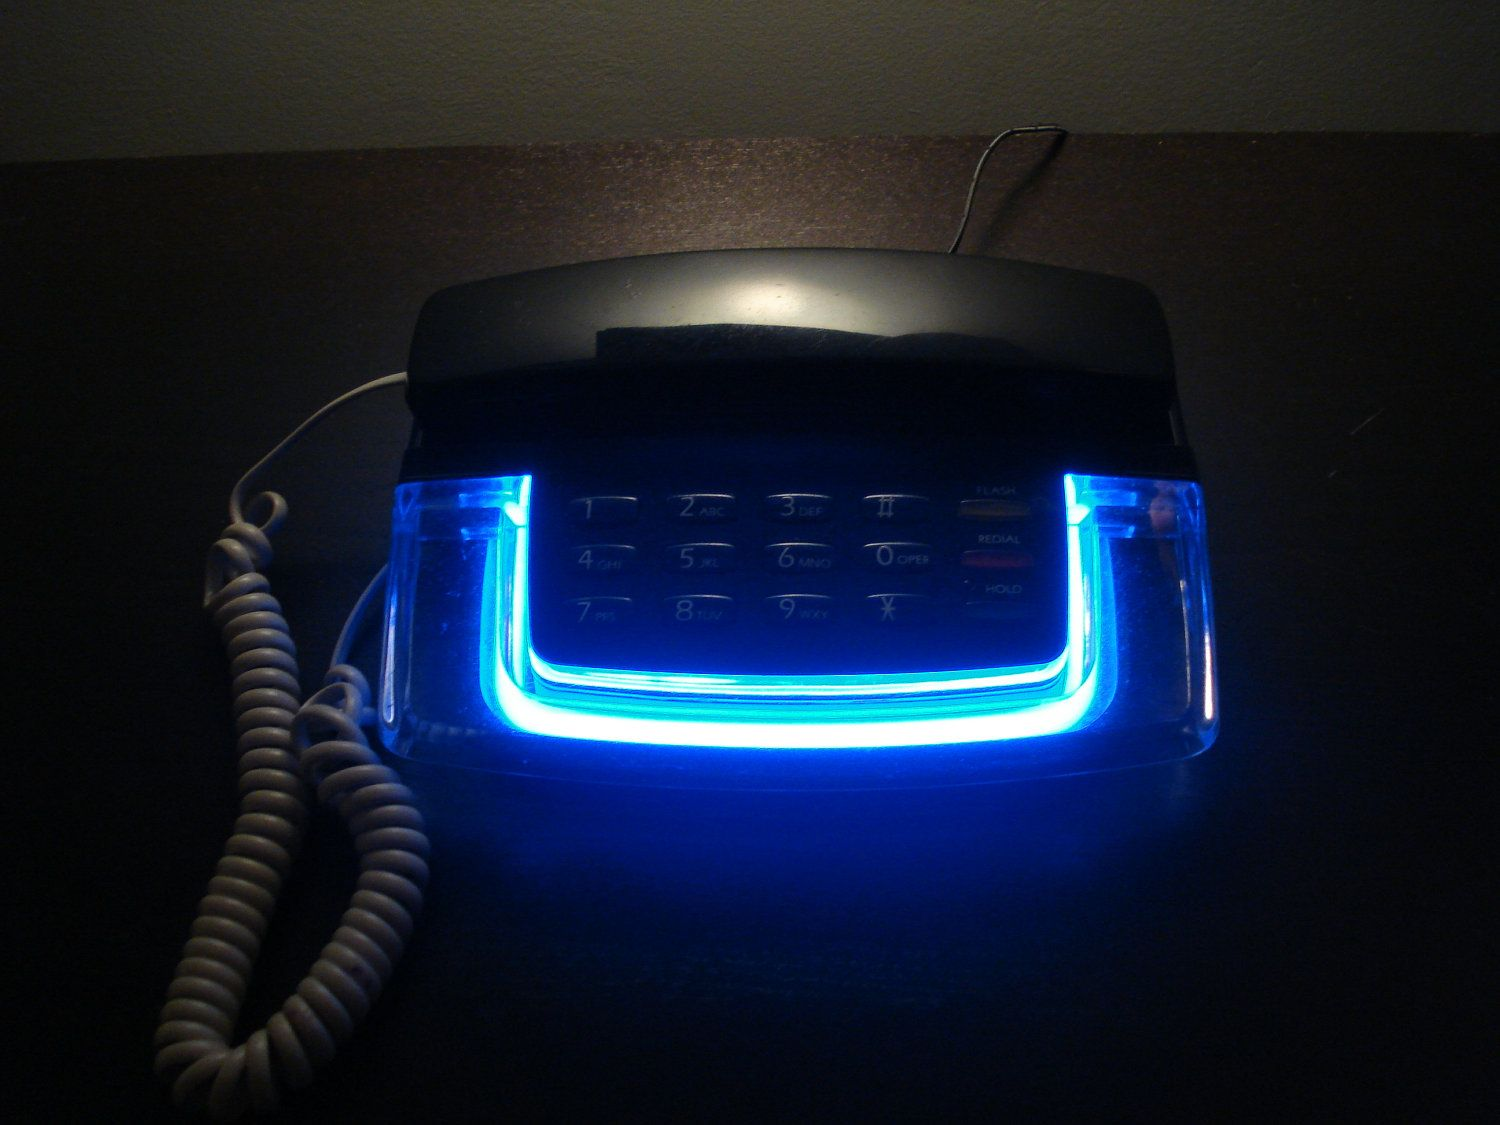 Blue Neon Phone 80 s, Childhood and Nostalgia